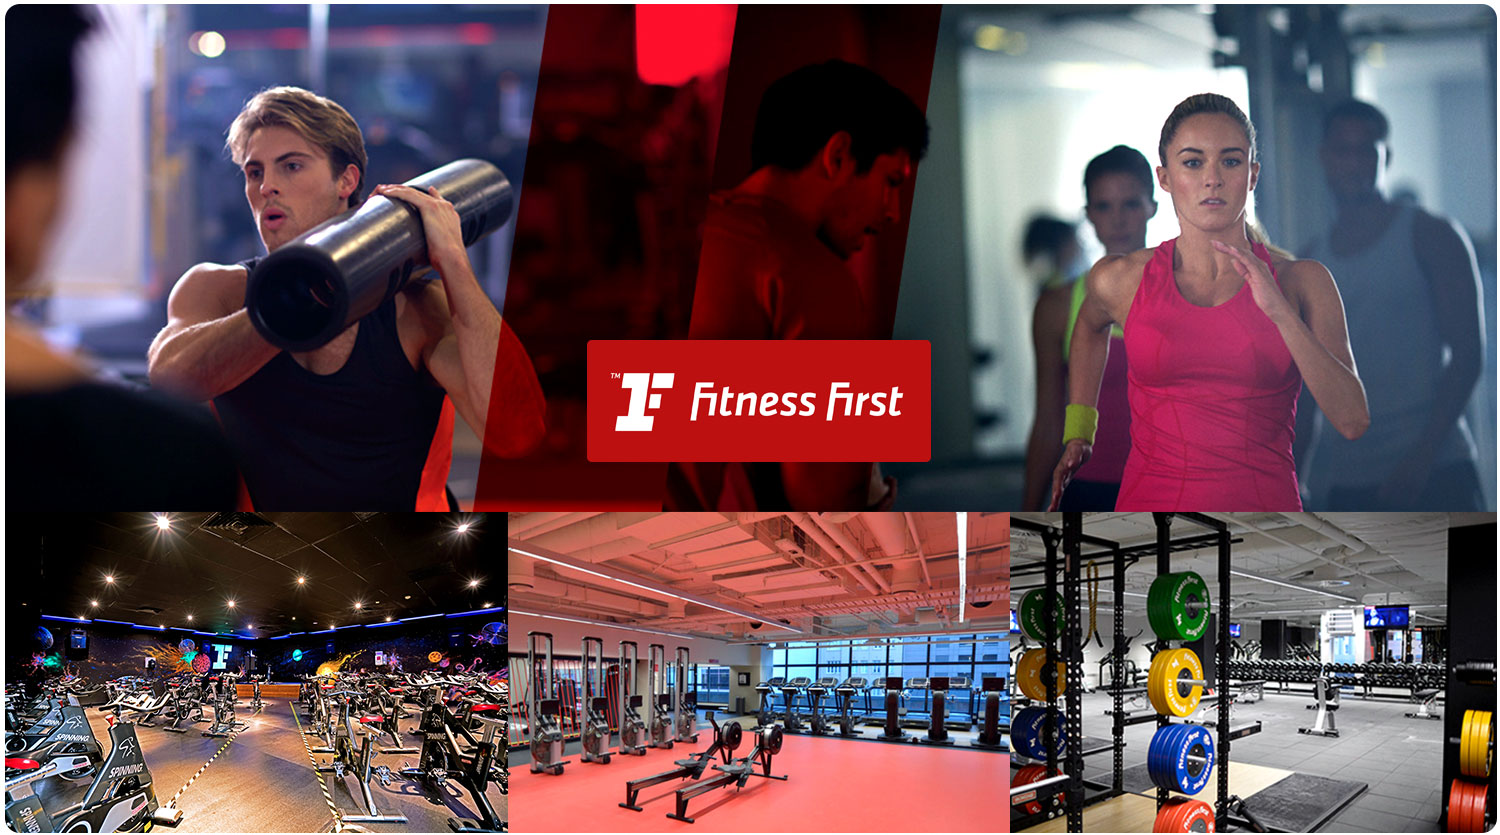 Start your Fitness Journey with Fitness First with only $14.95 for 14 days at Fitness First Rockdale NSW. Experience our first class gym and freestyle classes inc. Zumba, Pilates, Yoga, HIIT, Boxing, Les Mills and more. Take the first step with Fitness First Rockdale NSW.